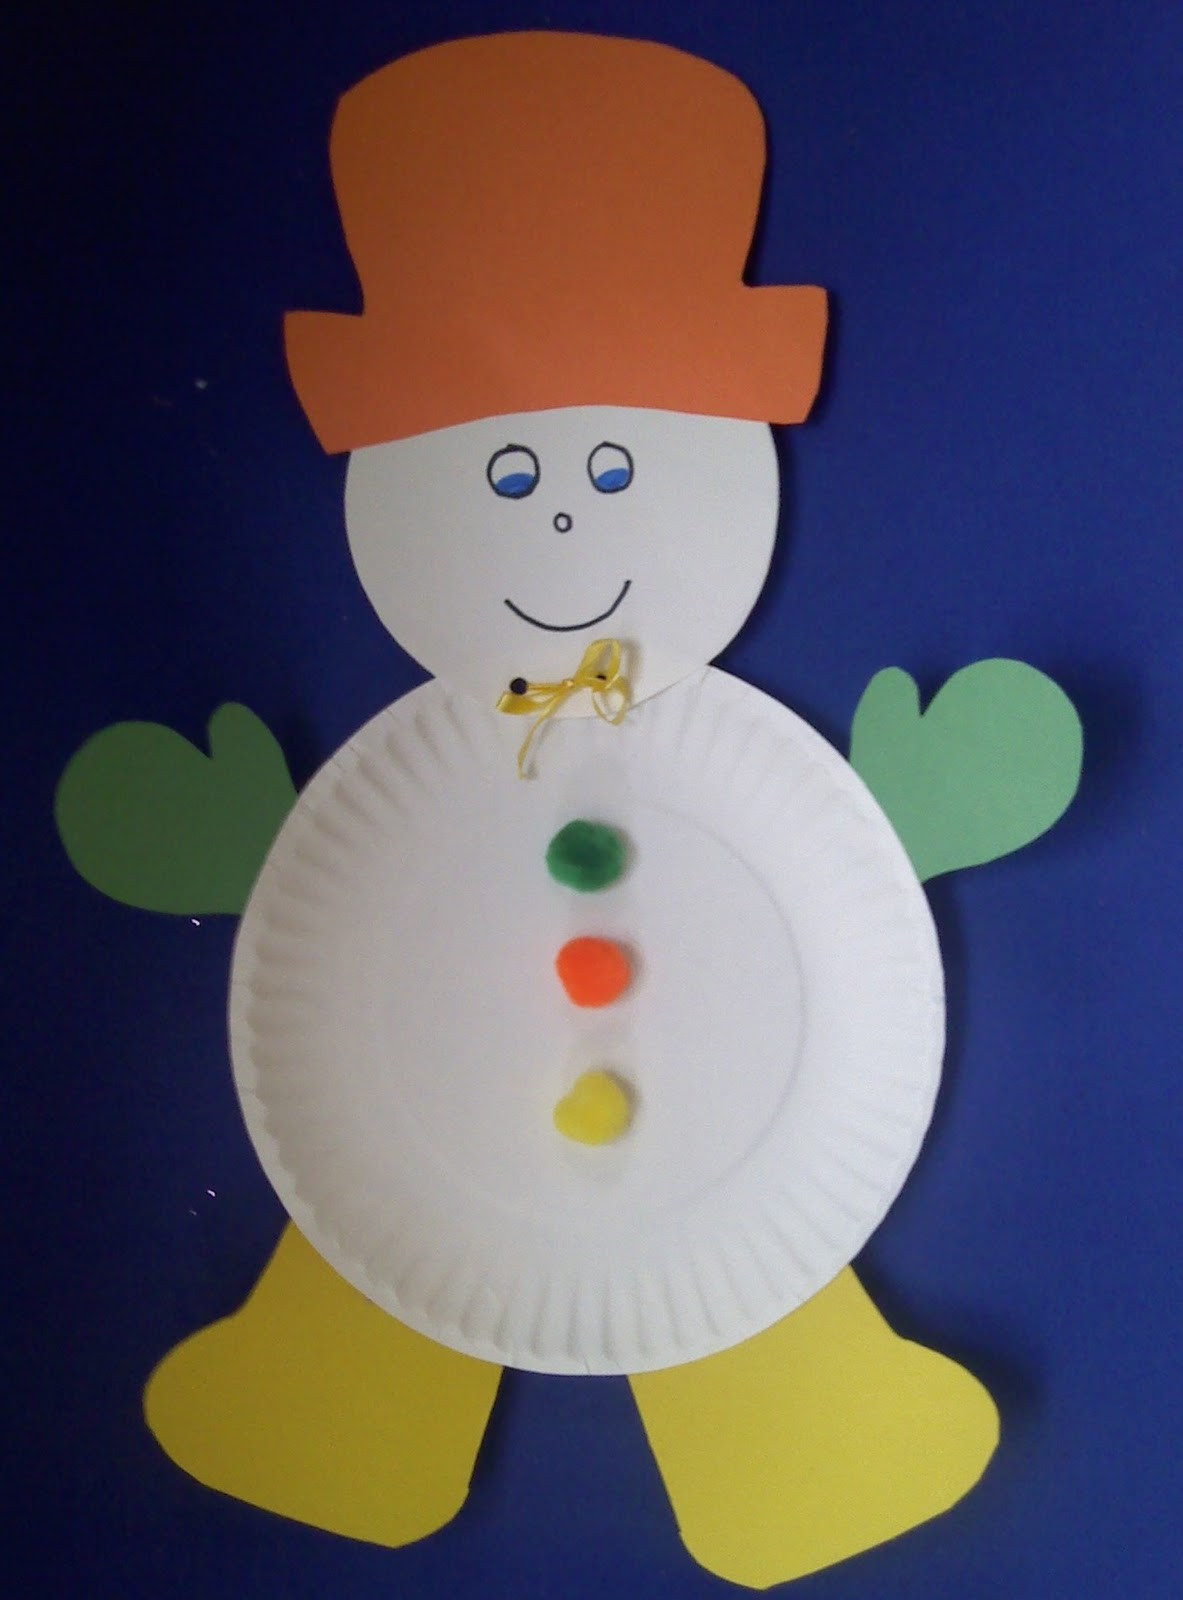 Arts And Crafts For Preschool  Crafts For Preschoolers January 2012